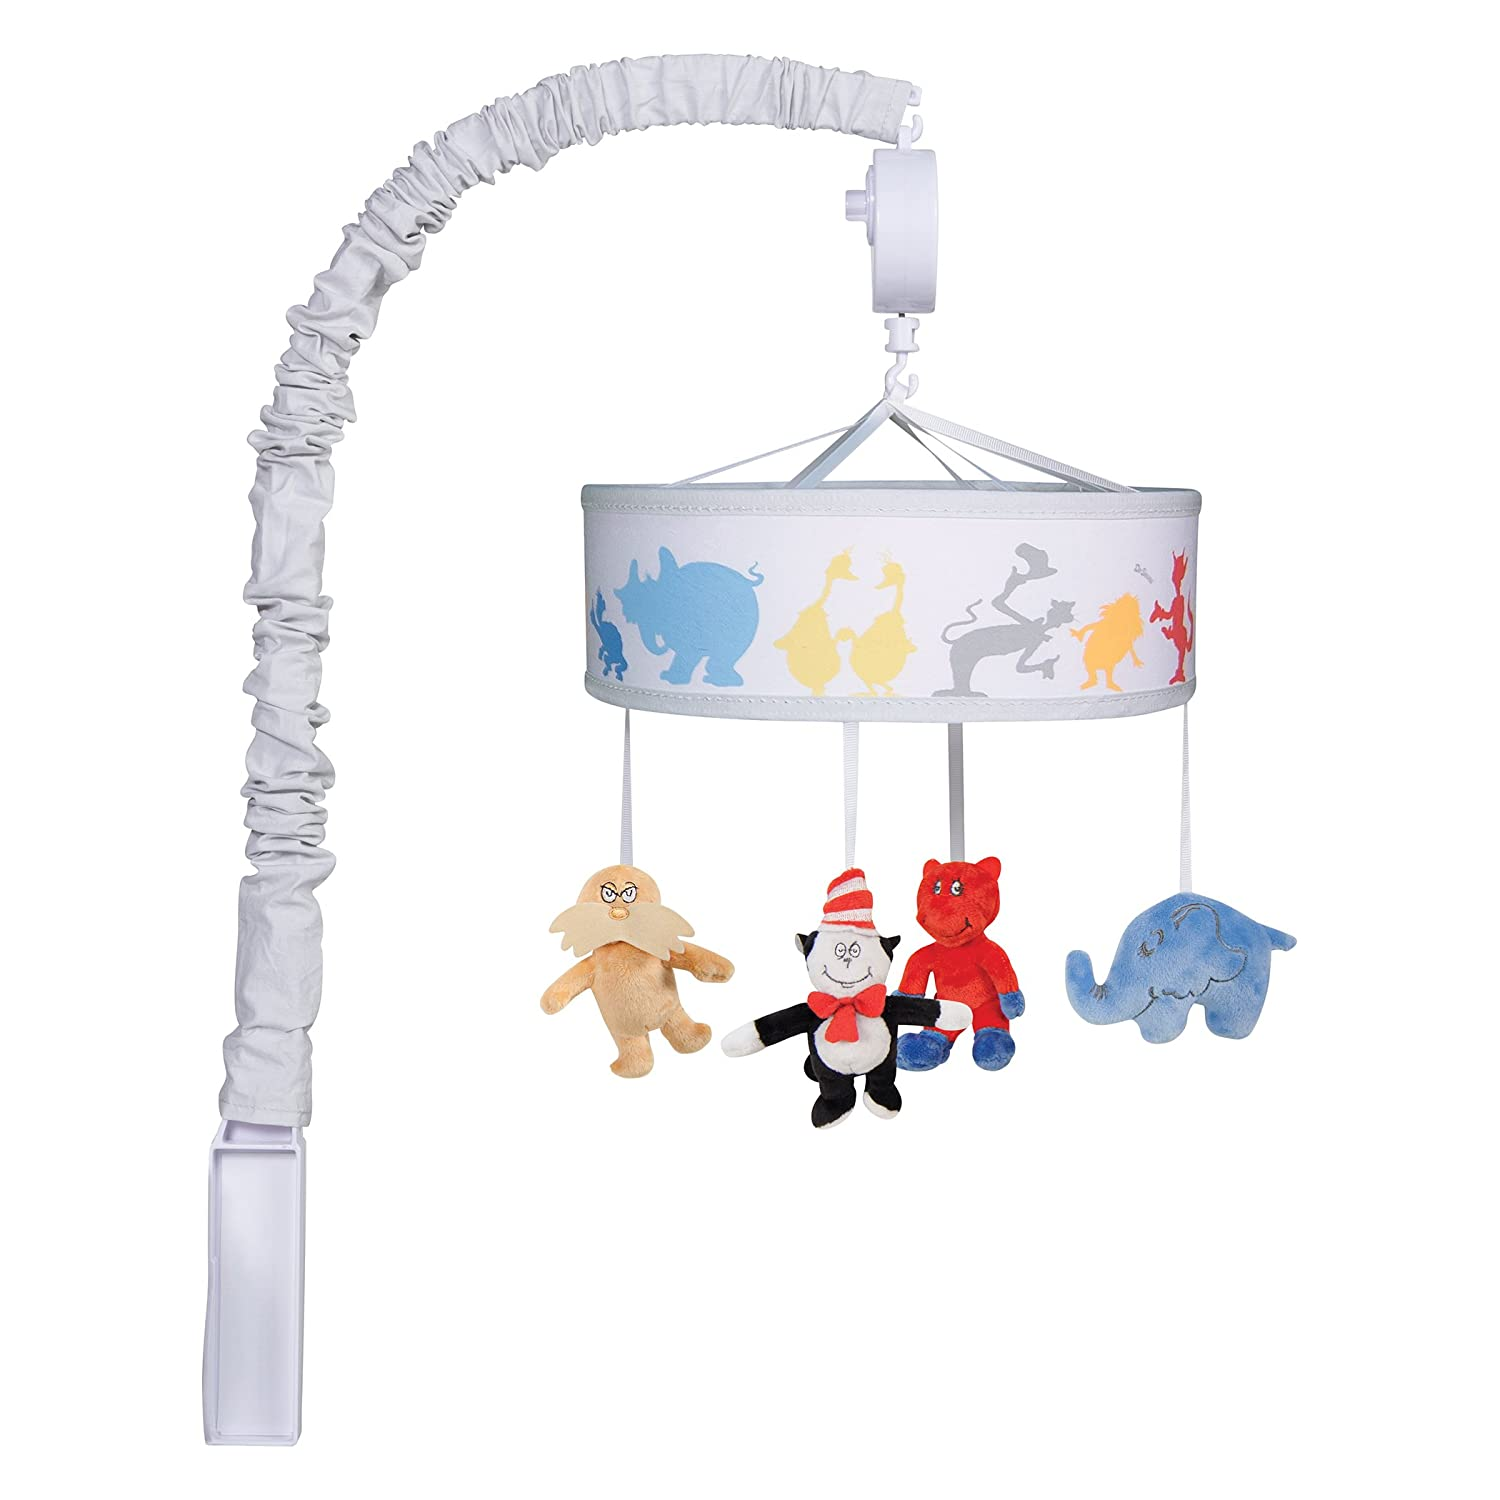 Trend Lab Dr. Seuss Friends, Cat in Hat Musical Crib Mobile, Baby Mobile, Nursery